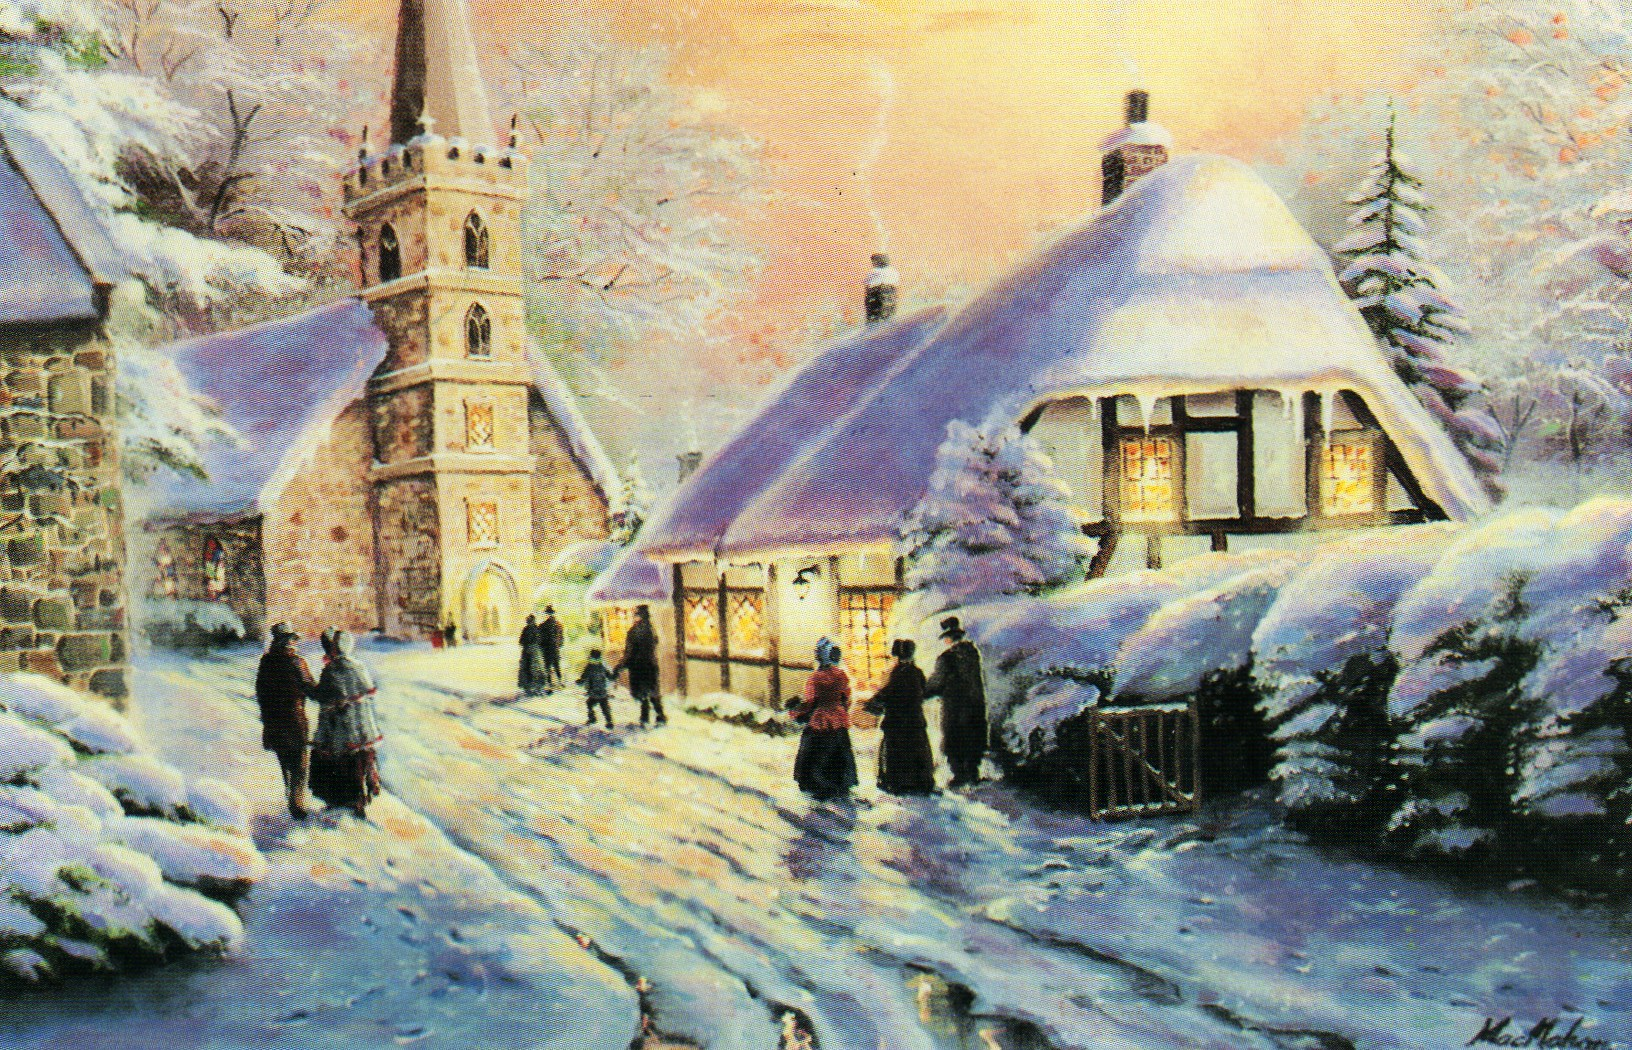 Winter in the village017 (2)